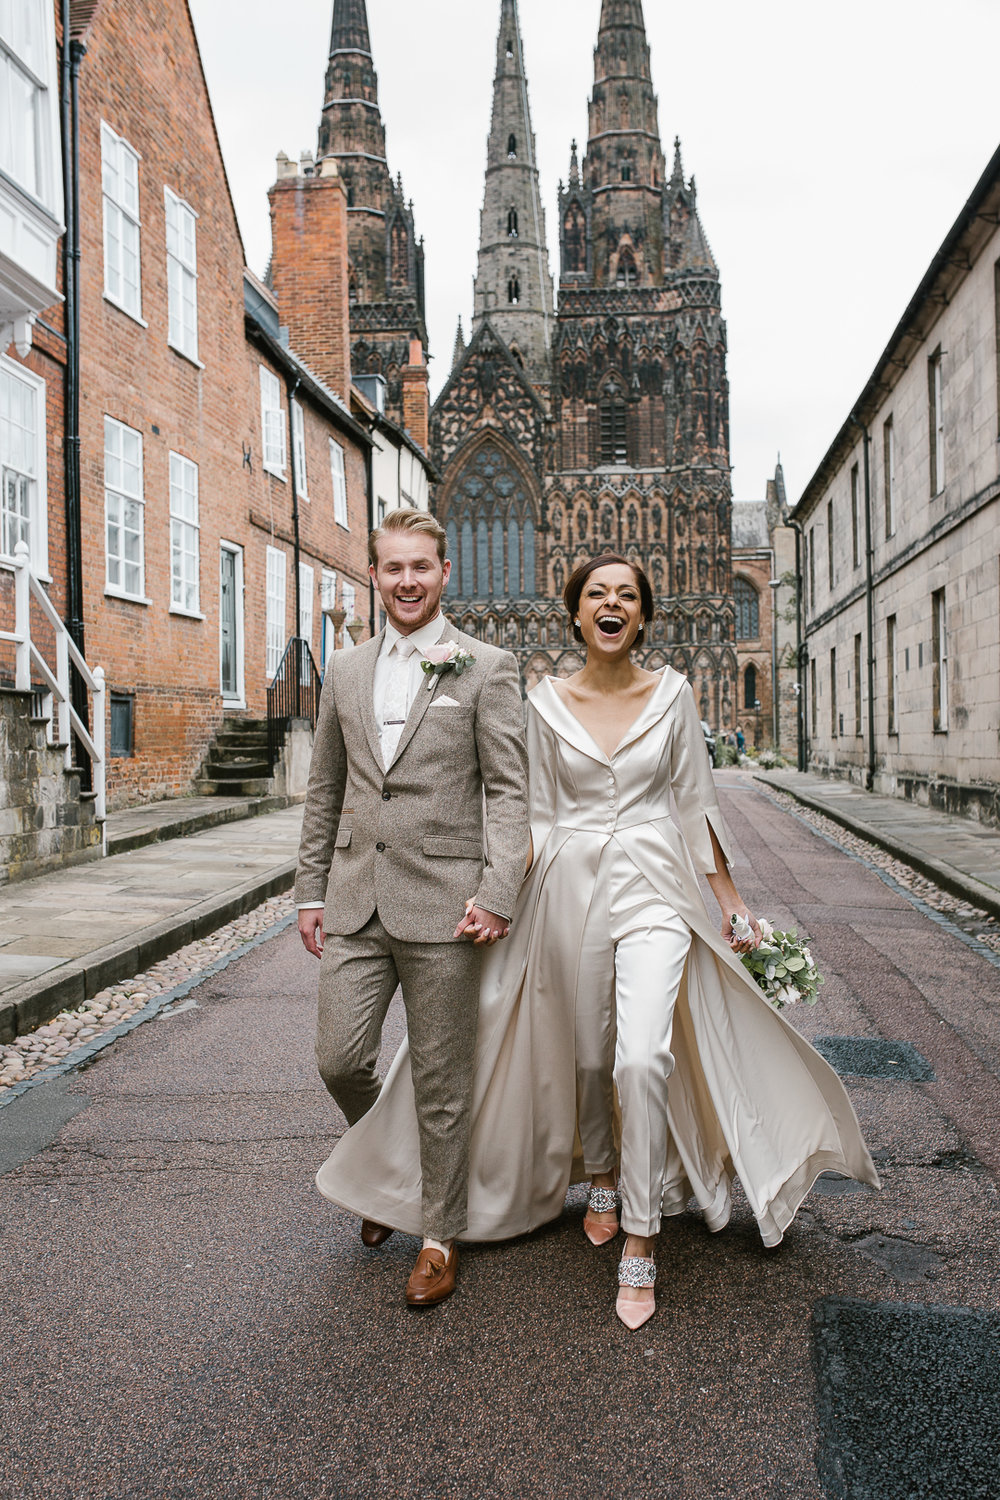 Lichfield Wedding, Lichfield Cathedral, Lichfield wedding photographer, staffordshire wedding photographer-107.jpg